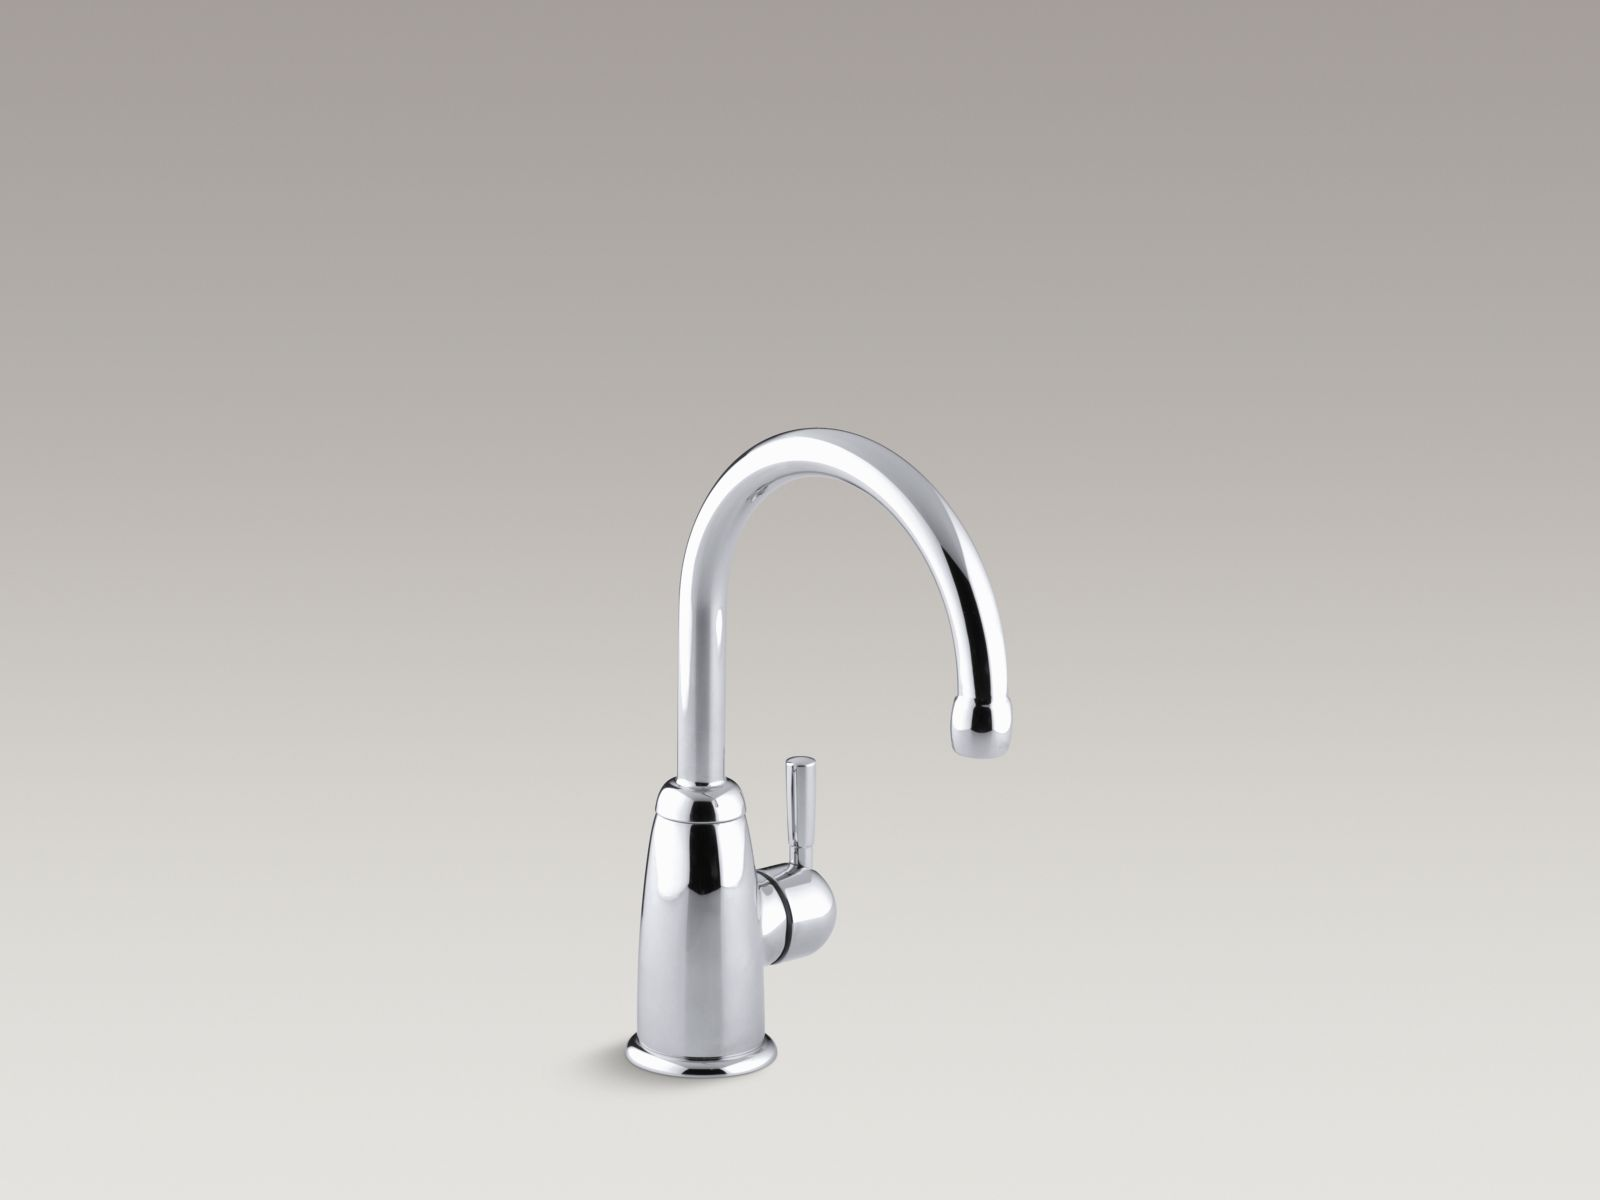 Kohler K-6665-CP Wellspring Single-handle Beverage Faucet with Contemporary Design Polished Chrome